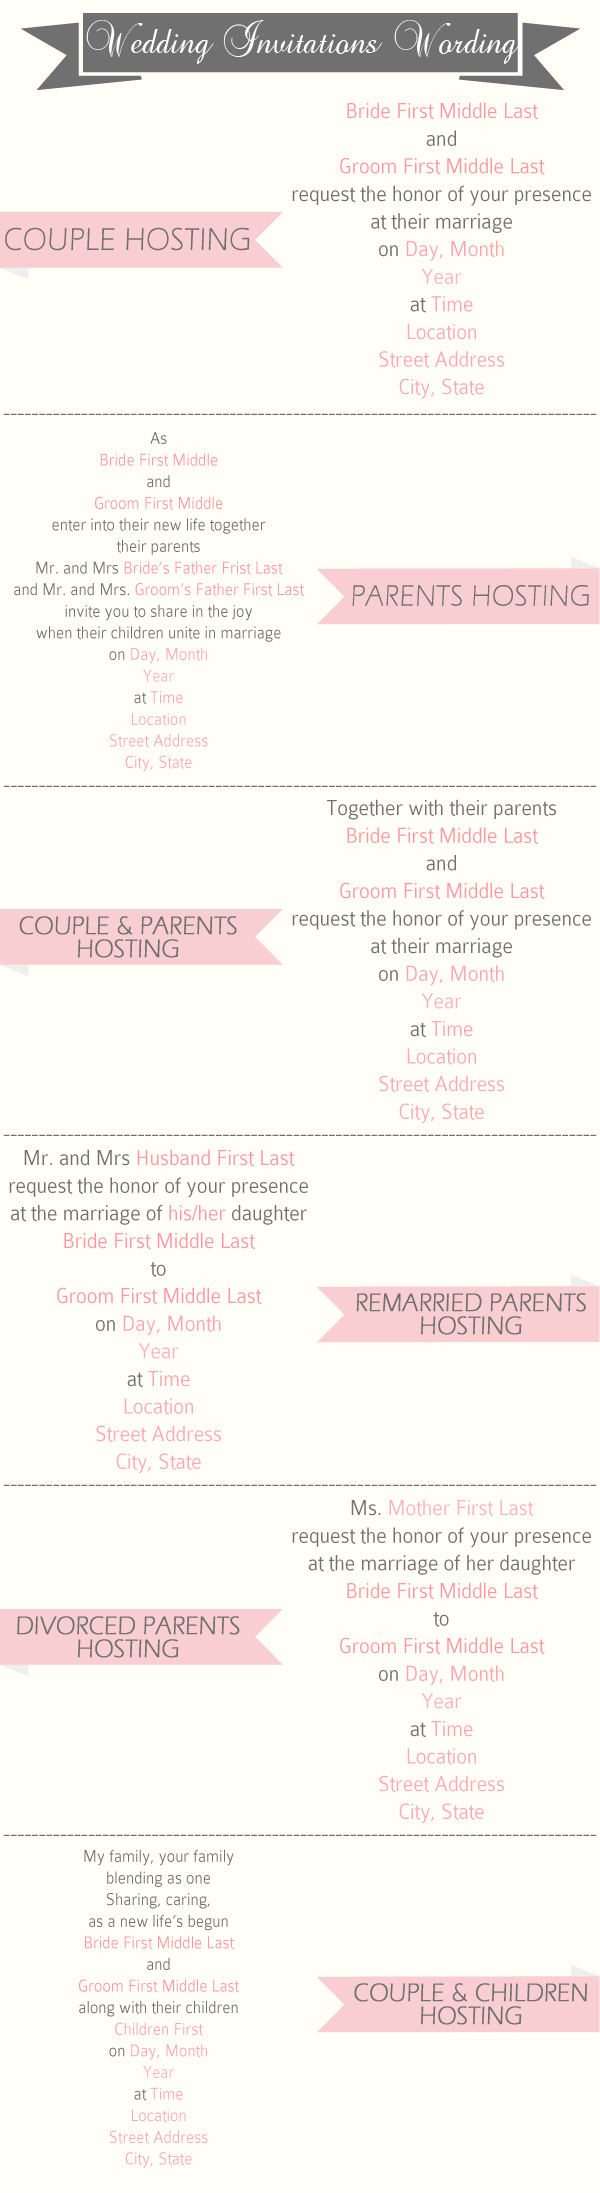 Creative Wedding Invitation Wording Wedding Invitation Wording Elegantweddinginvites Blog